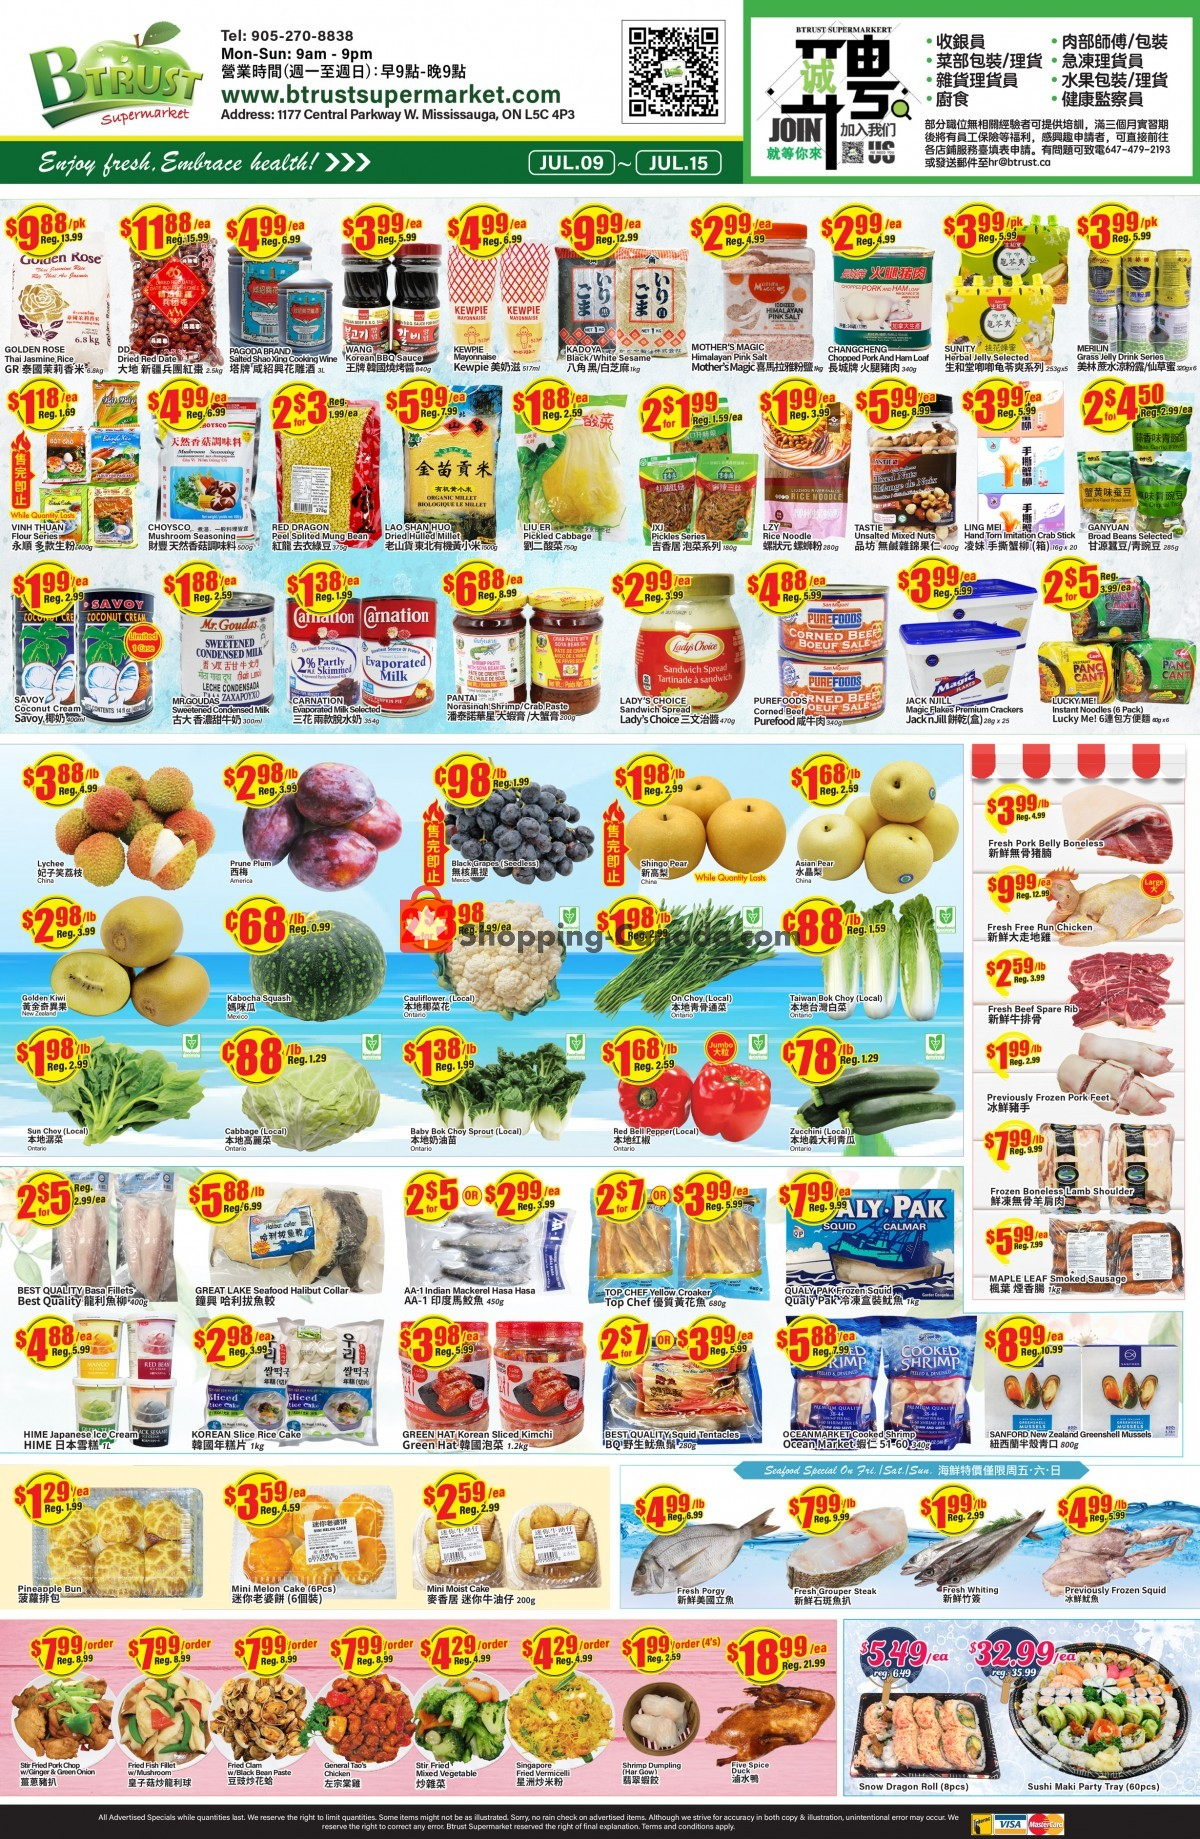 Flyer Btrust Supermarket Canada - from Friday July 9, 2021 to Thursday July 15, 2021